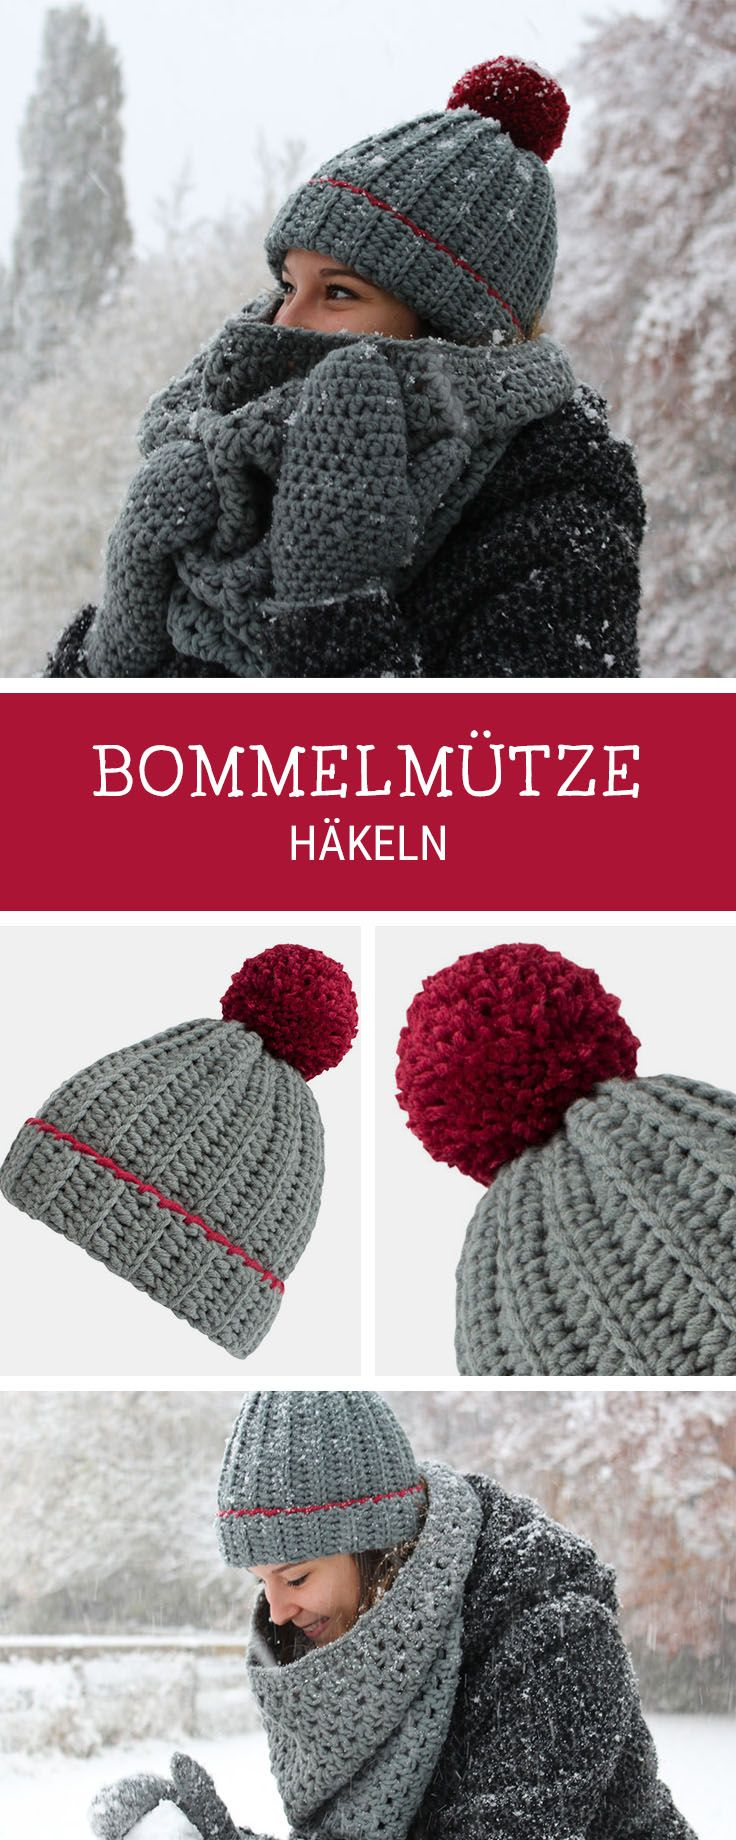 Häkeln - DIY-Anleitungen | Pinterest | Crochet, Knit crochet and ...